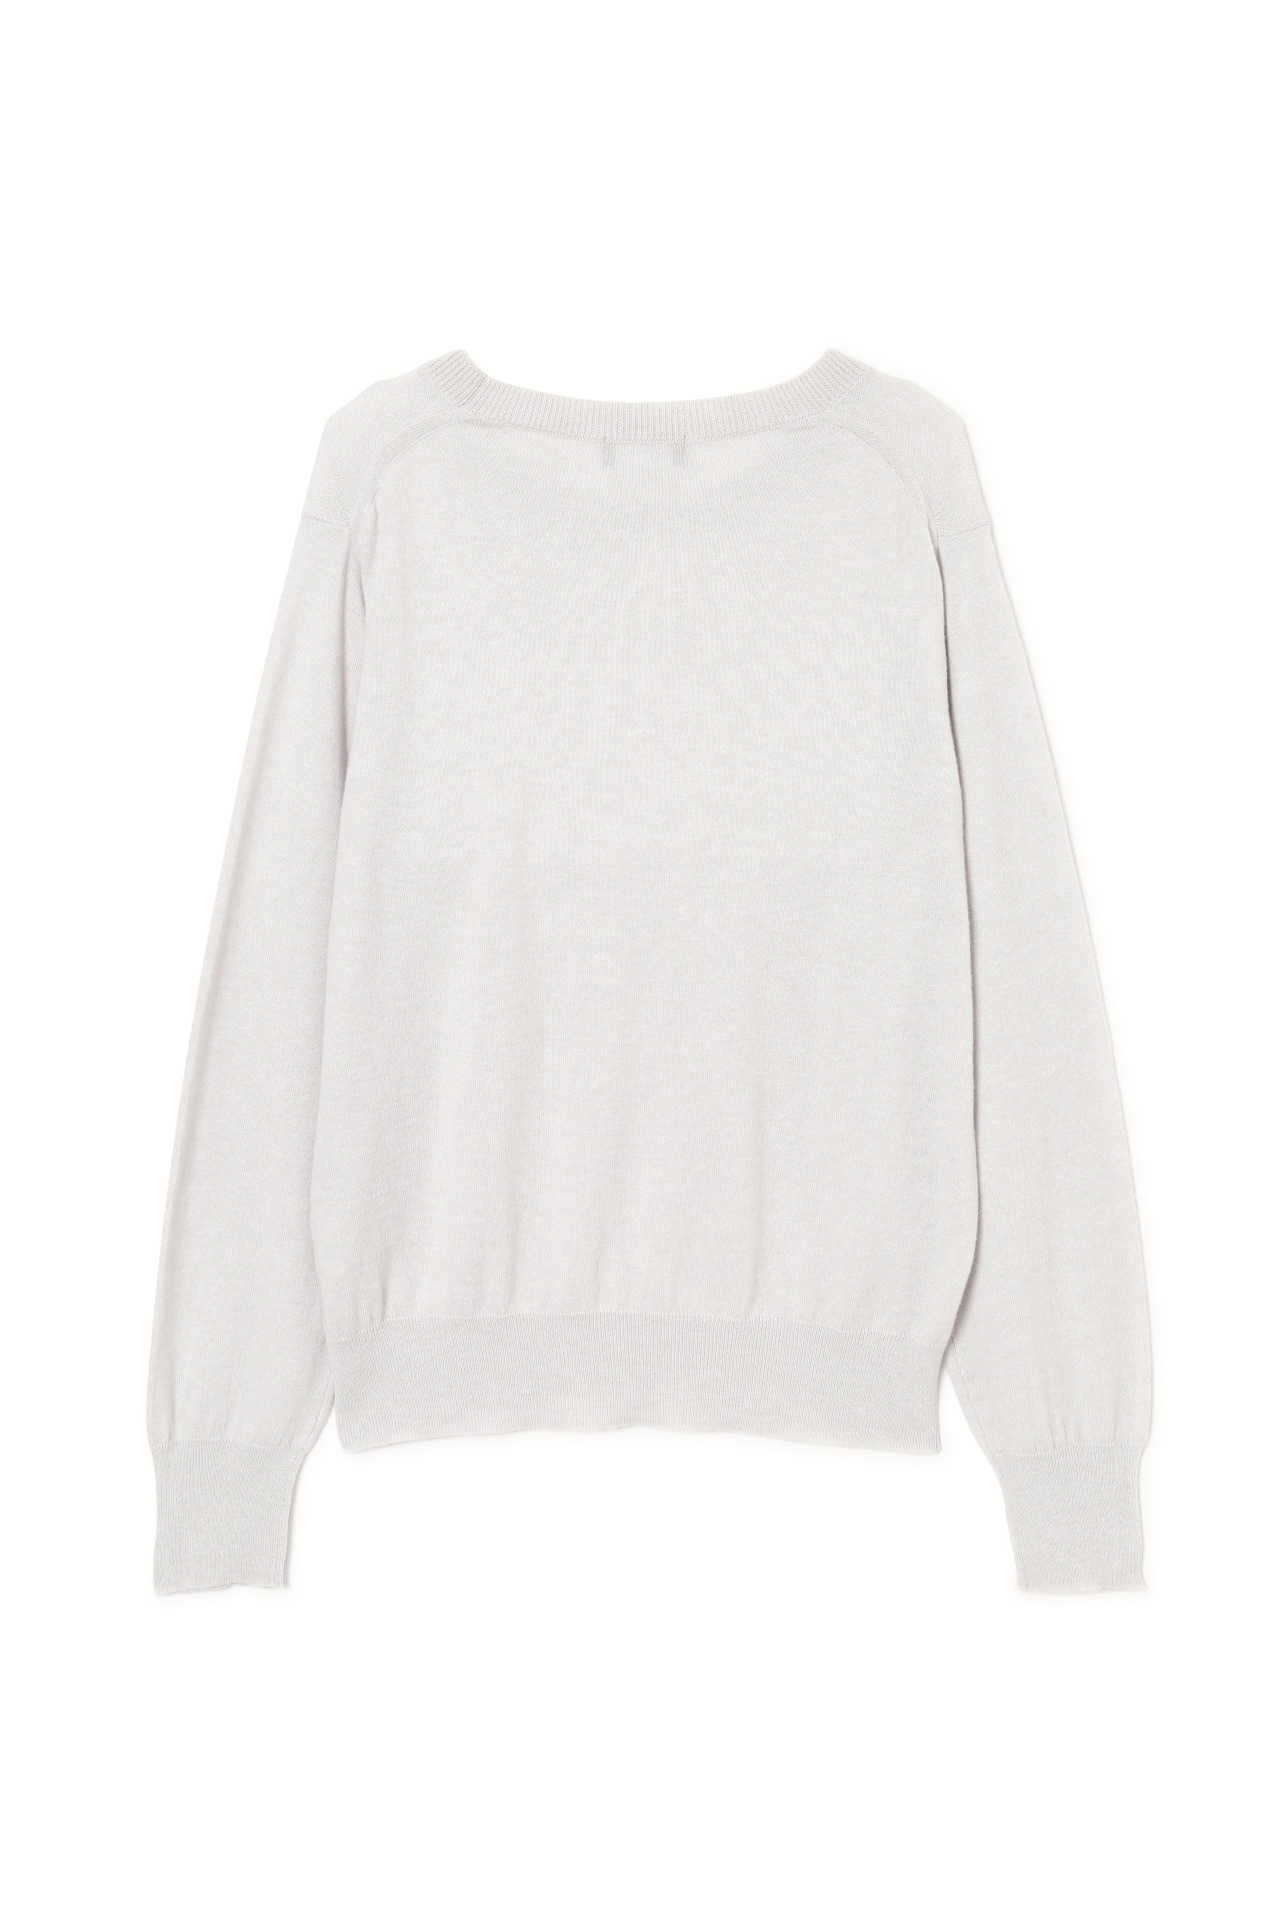 WOOL COTTON JUMPER6